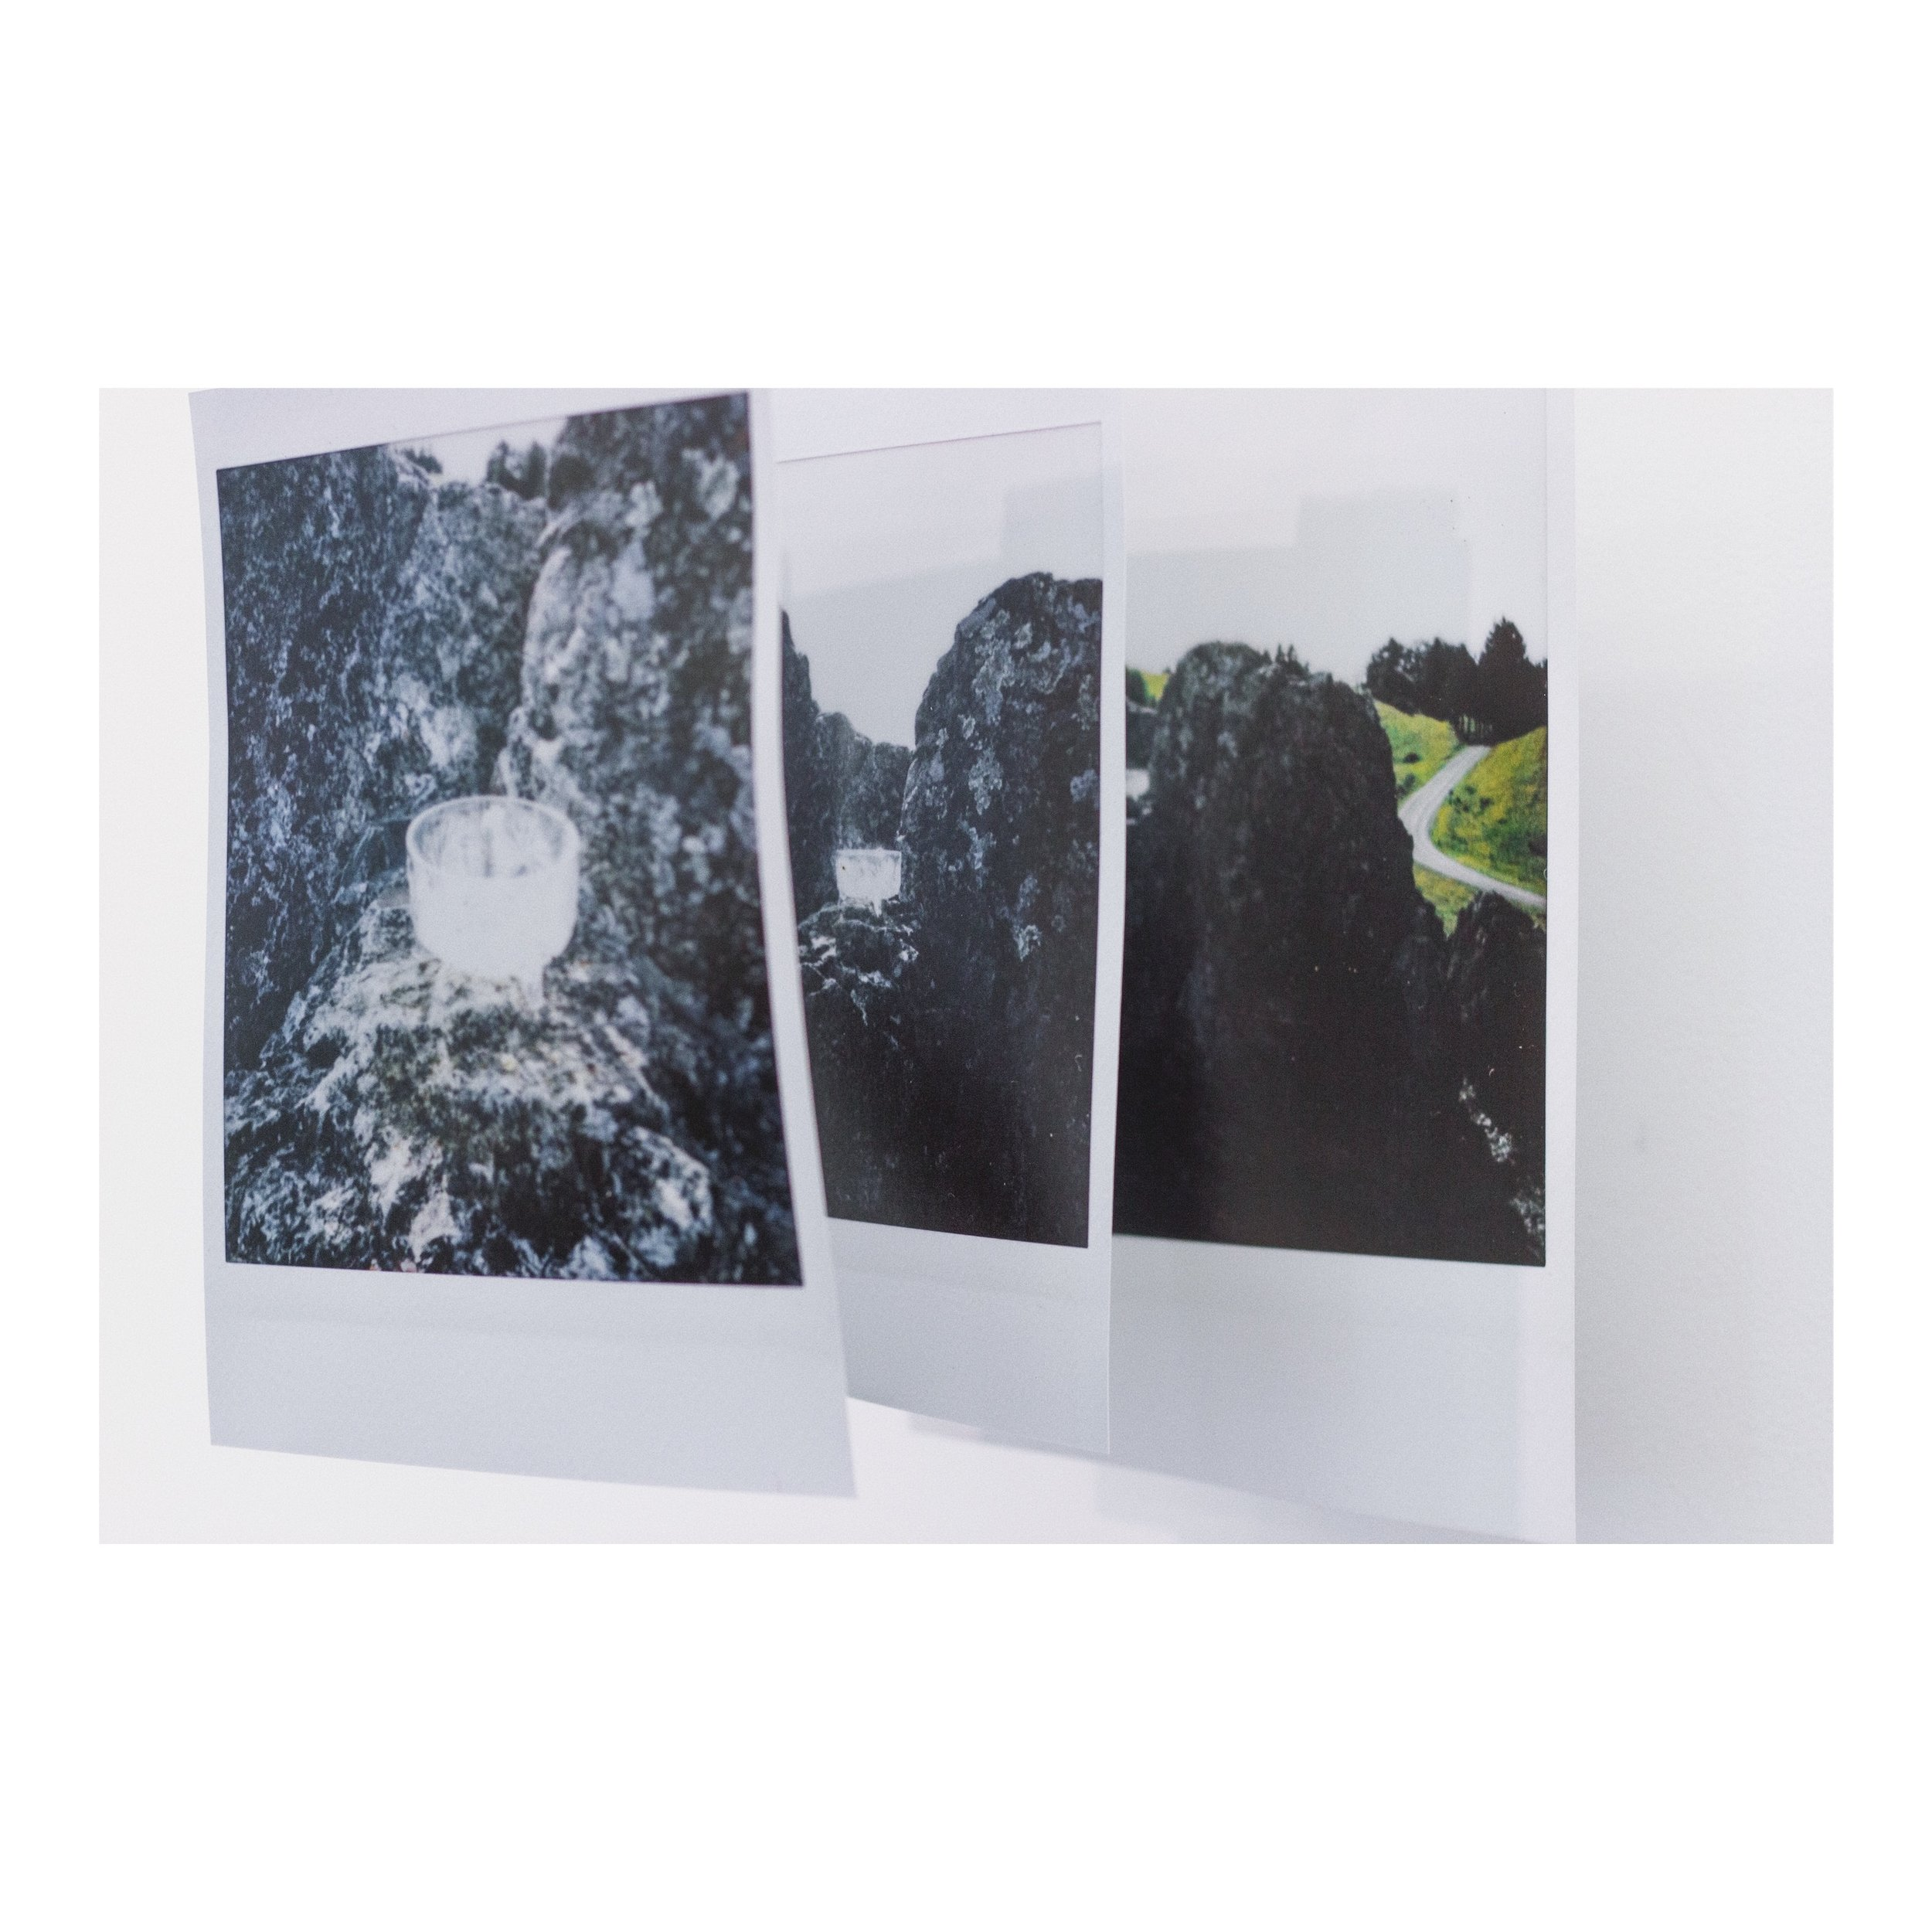 closer and closer now but start back at the beginning each time around not close enough to touch but close enough to reach and think about why you're reaching in the first place maybe take a step back, ​ 2019 digital prints, polaroid, gauze and thread